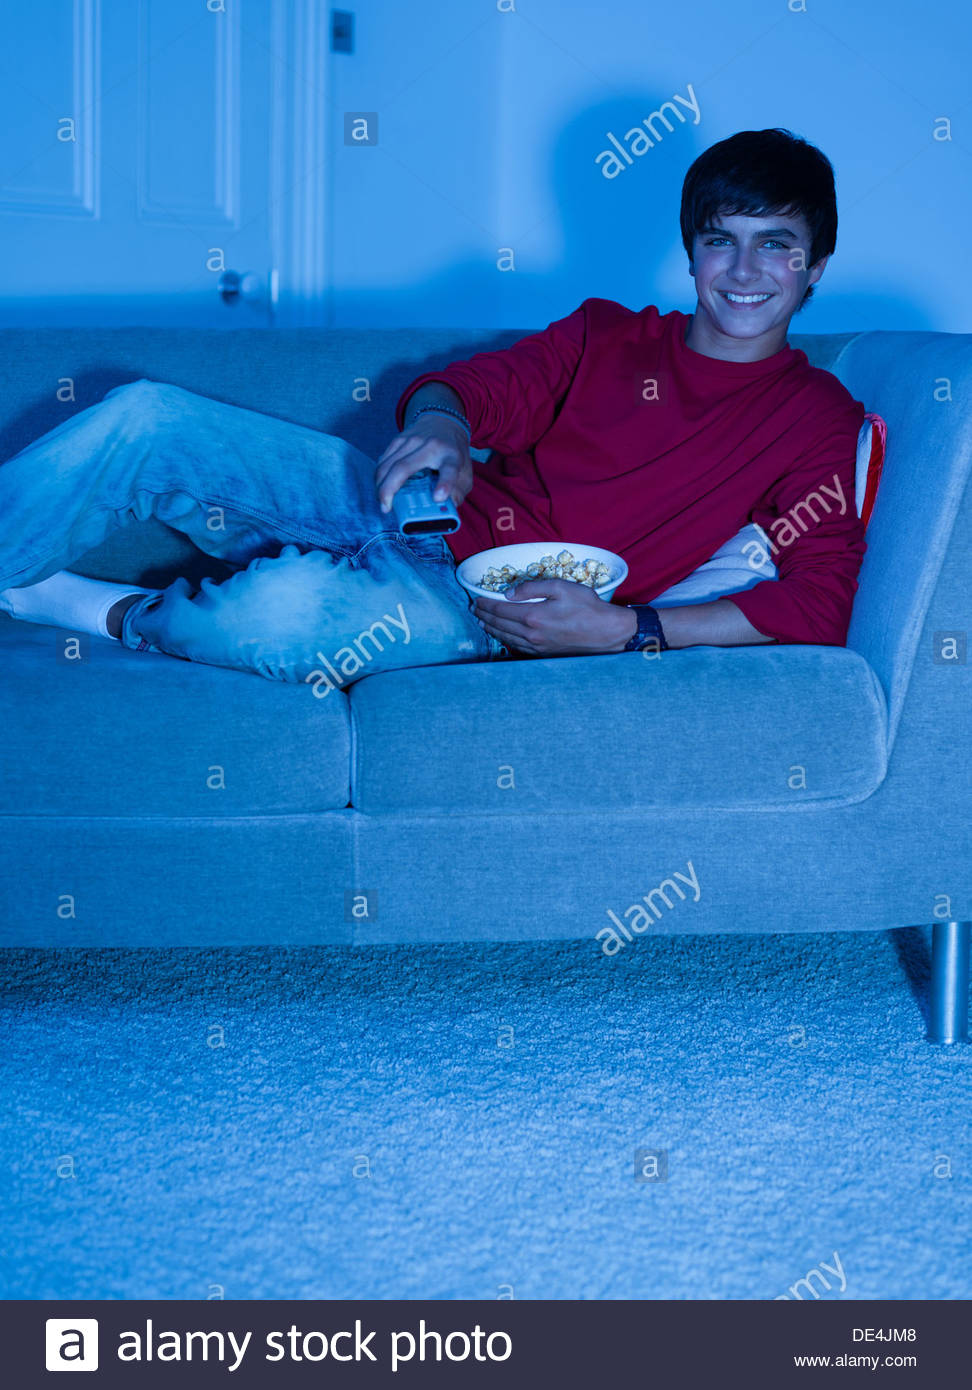 Smiling teenage boy laying on sofa with remote control - Stock Image